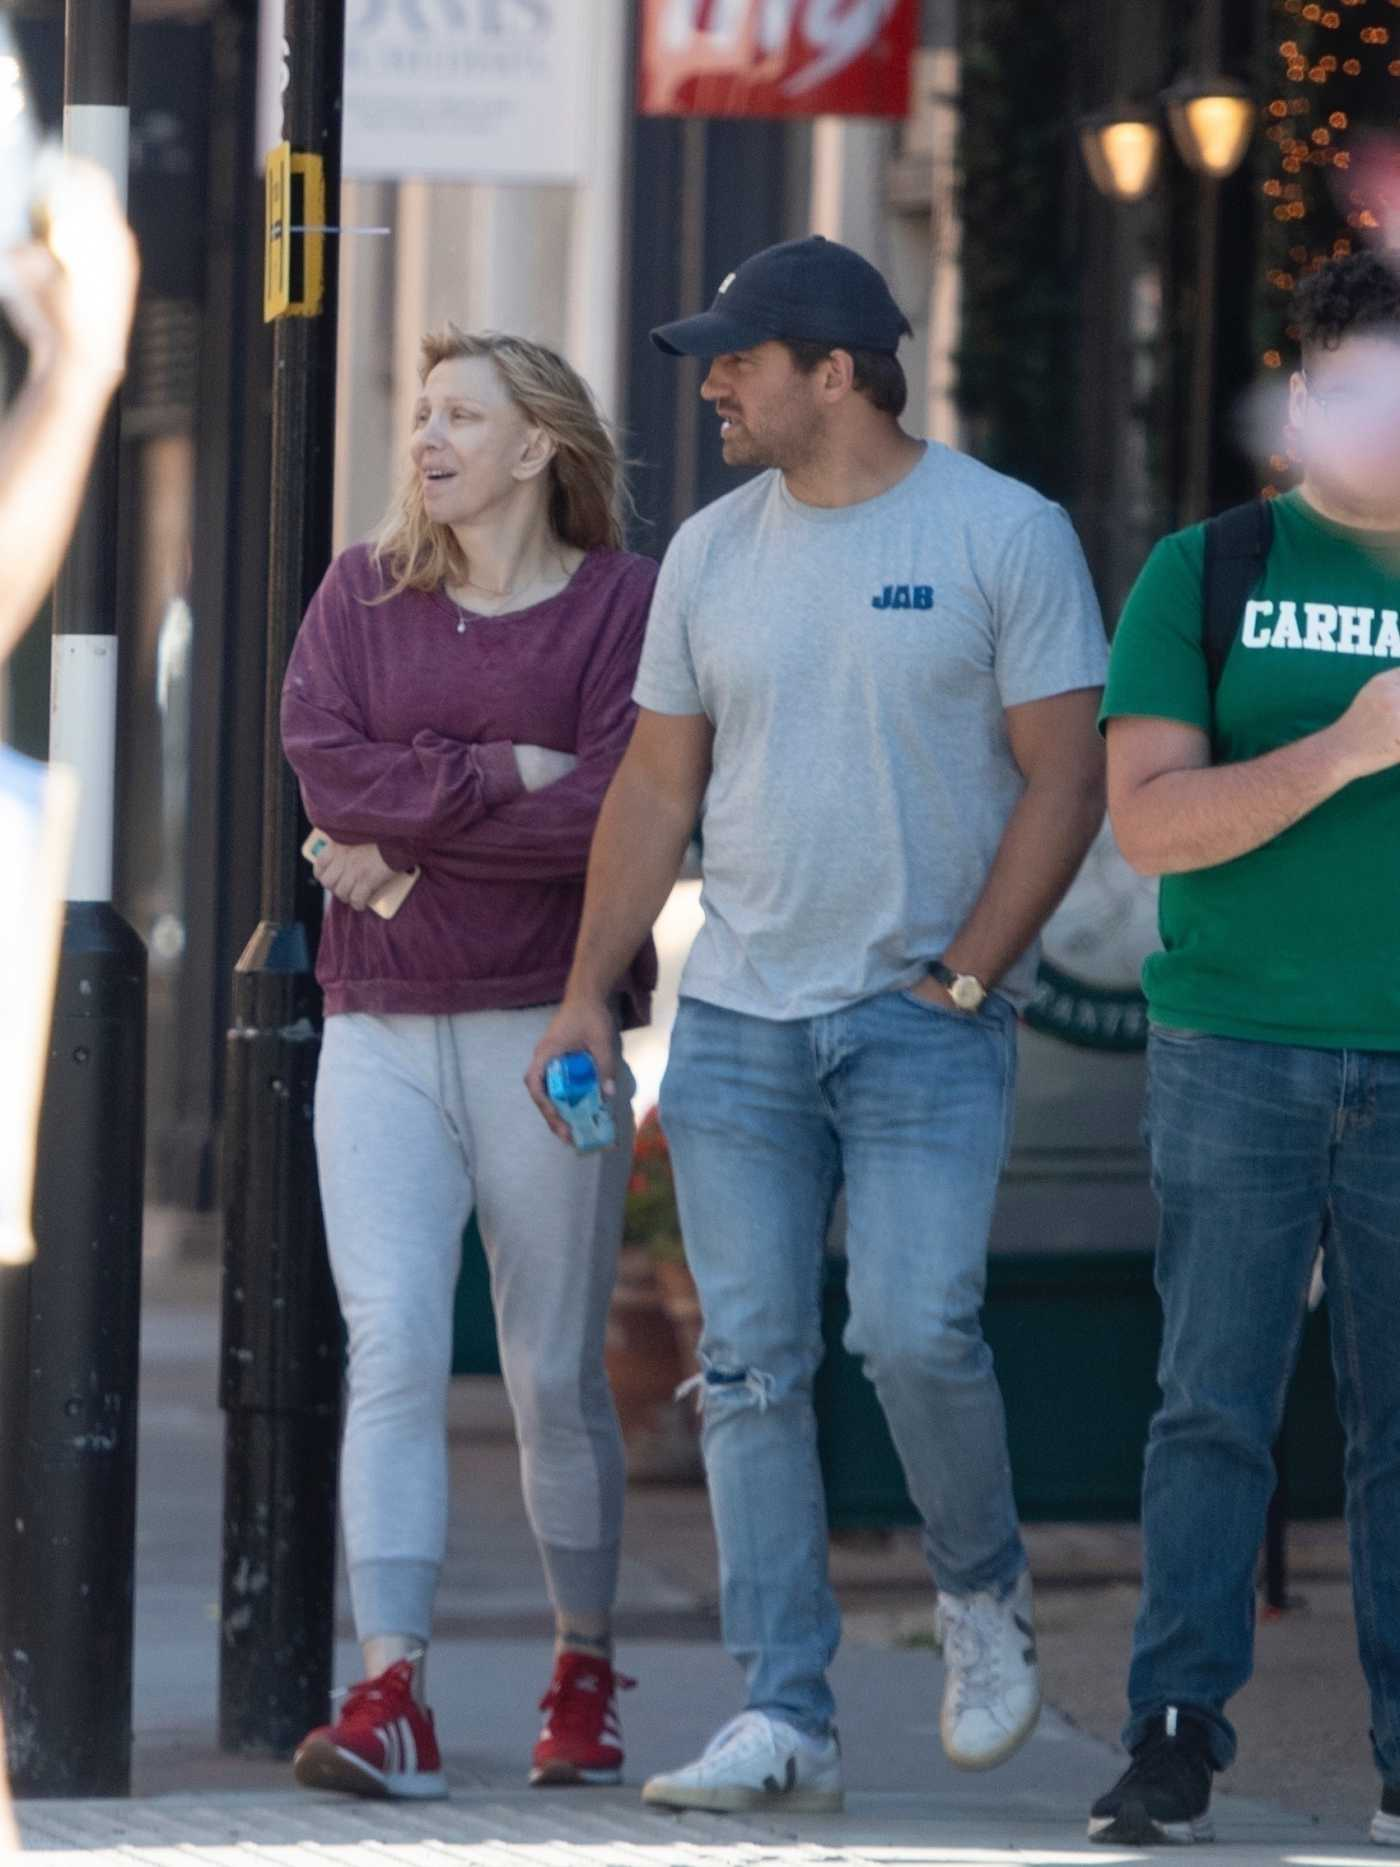 Courtney Love in a Purple Sweatshirt Was Seen Out with Alex Hemsley in London 05/29/2020